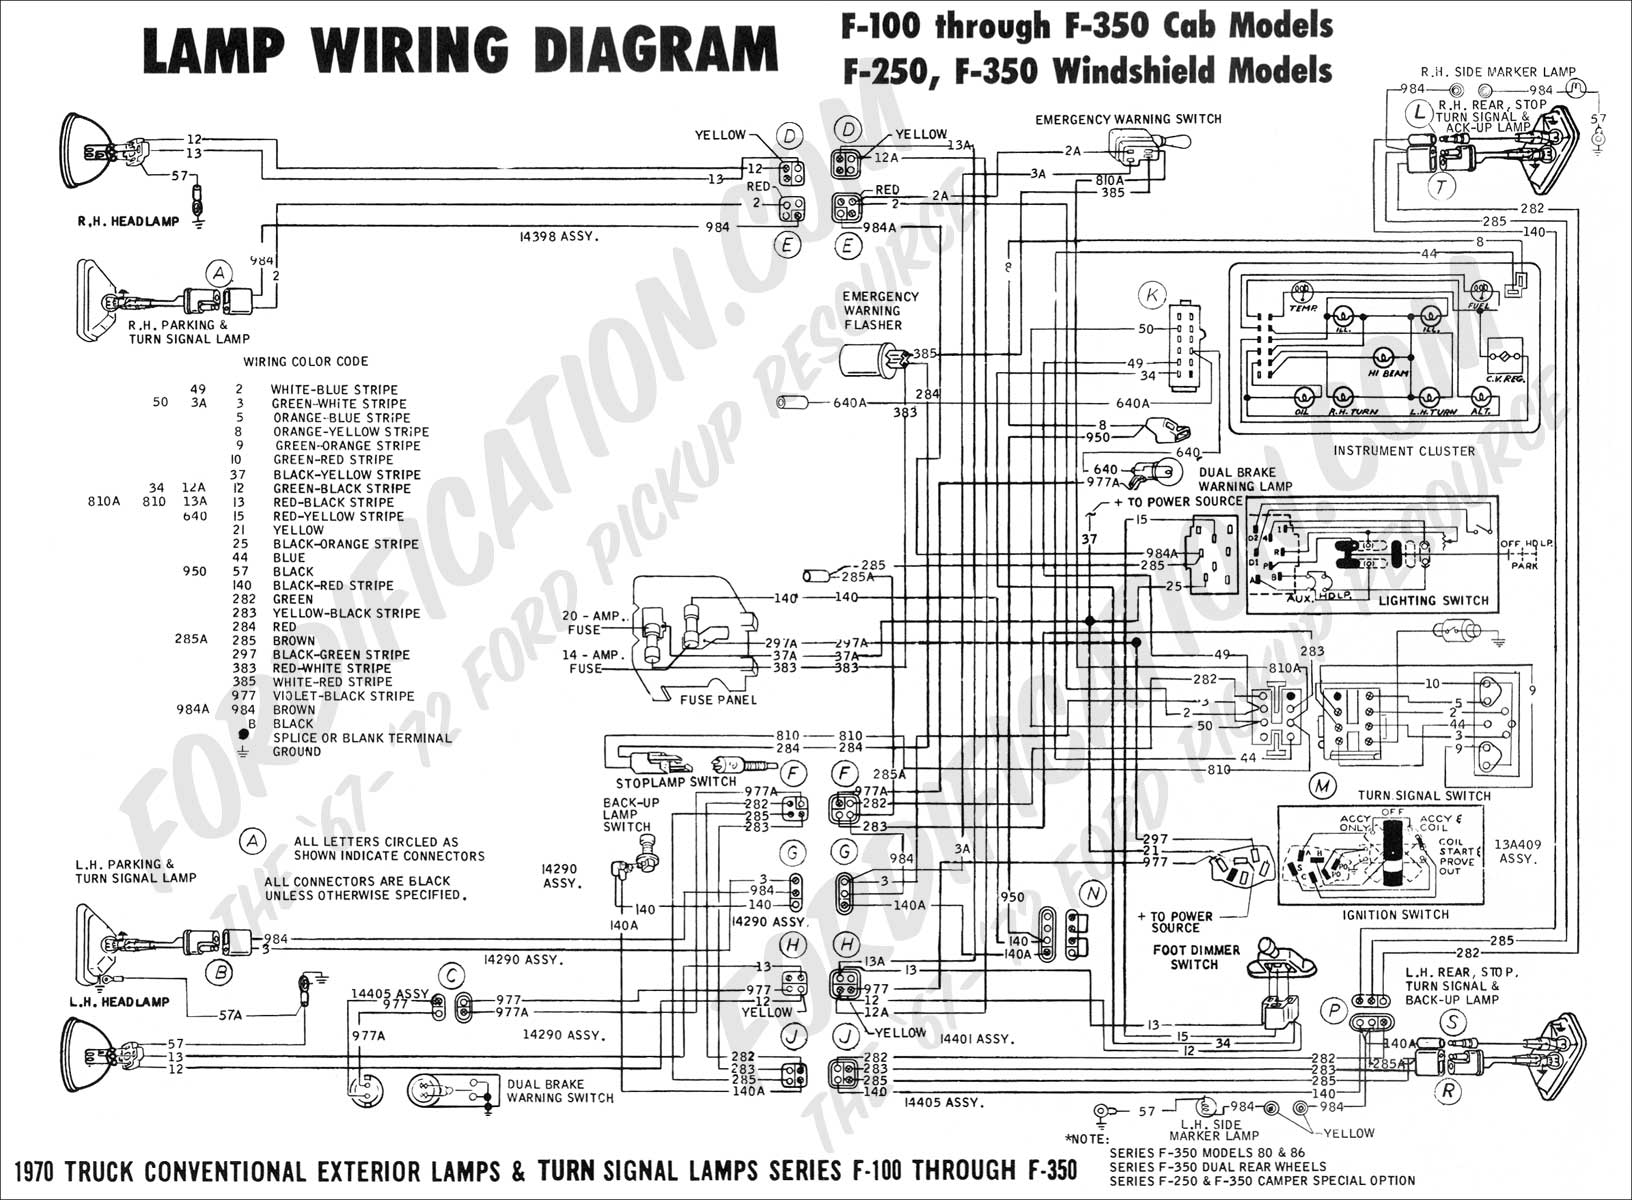 03 ford f 150 abs wiring diagram ford van wiring diagram ford wiring diagrams 1997 ford f150